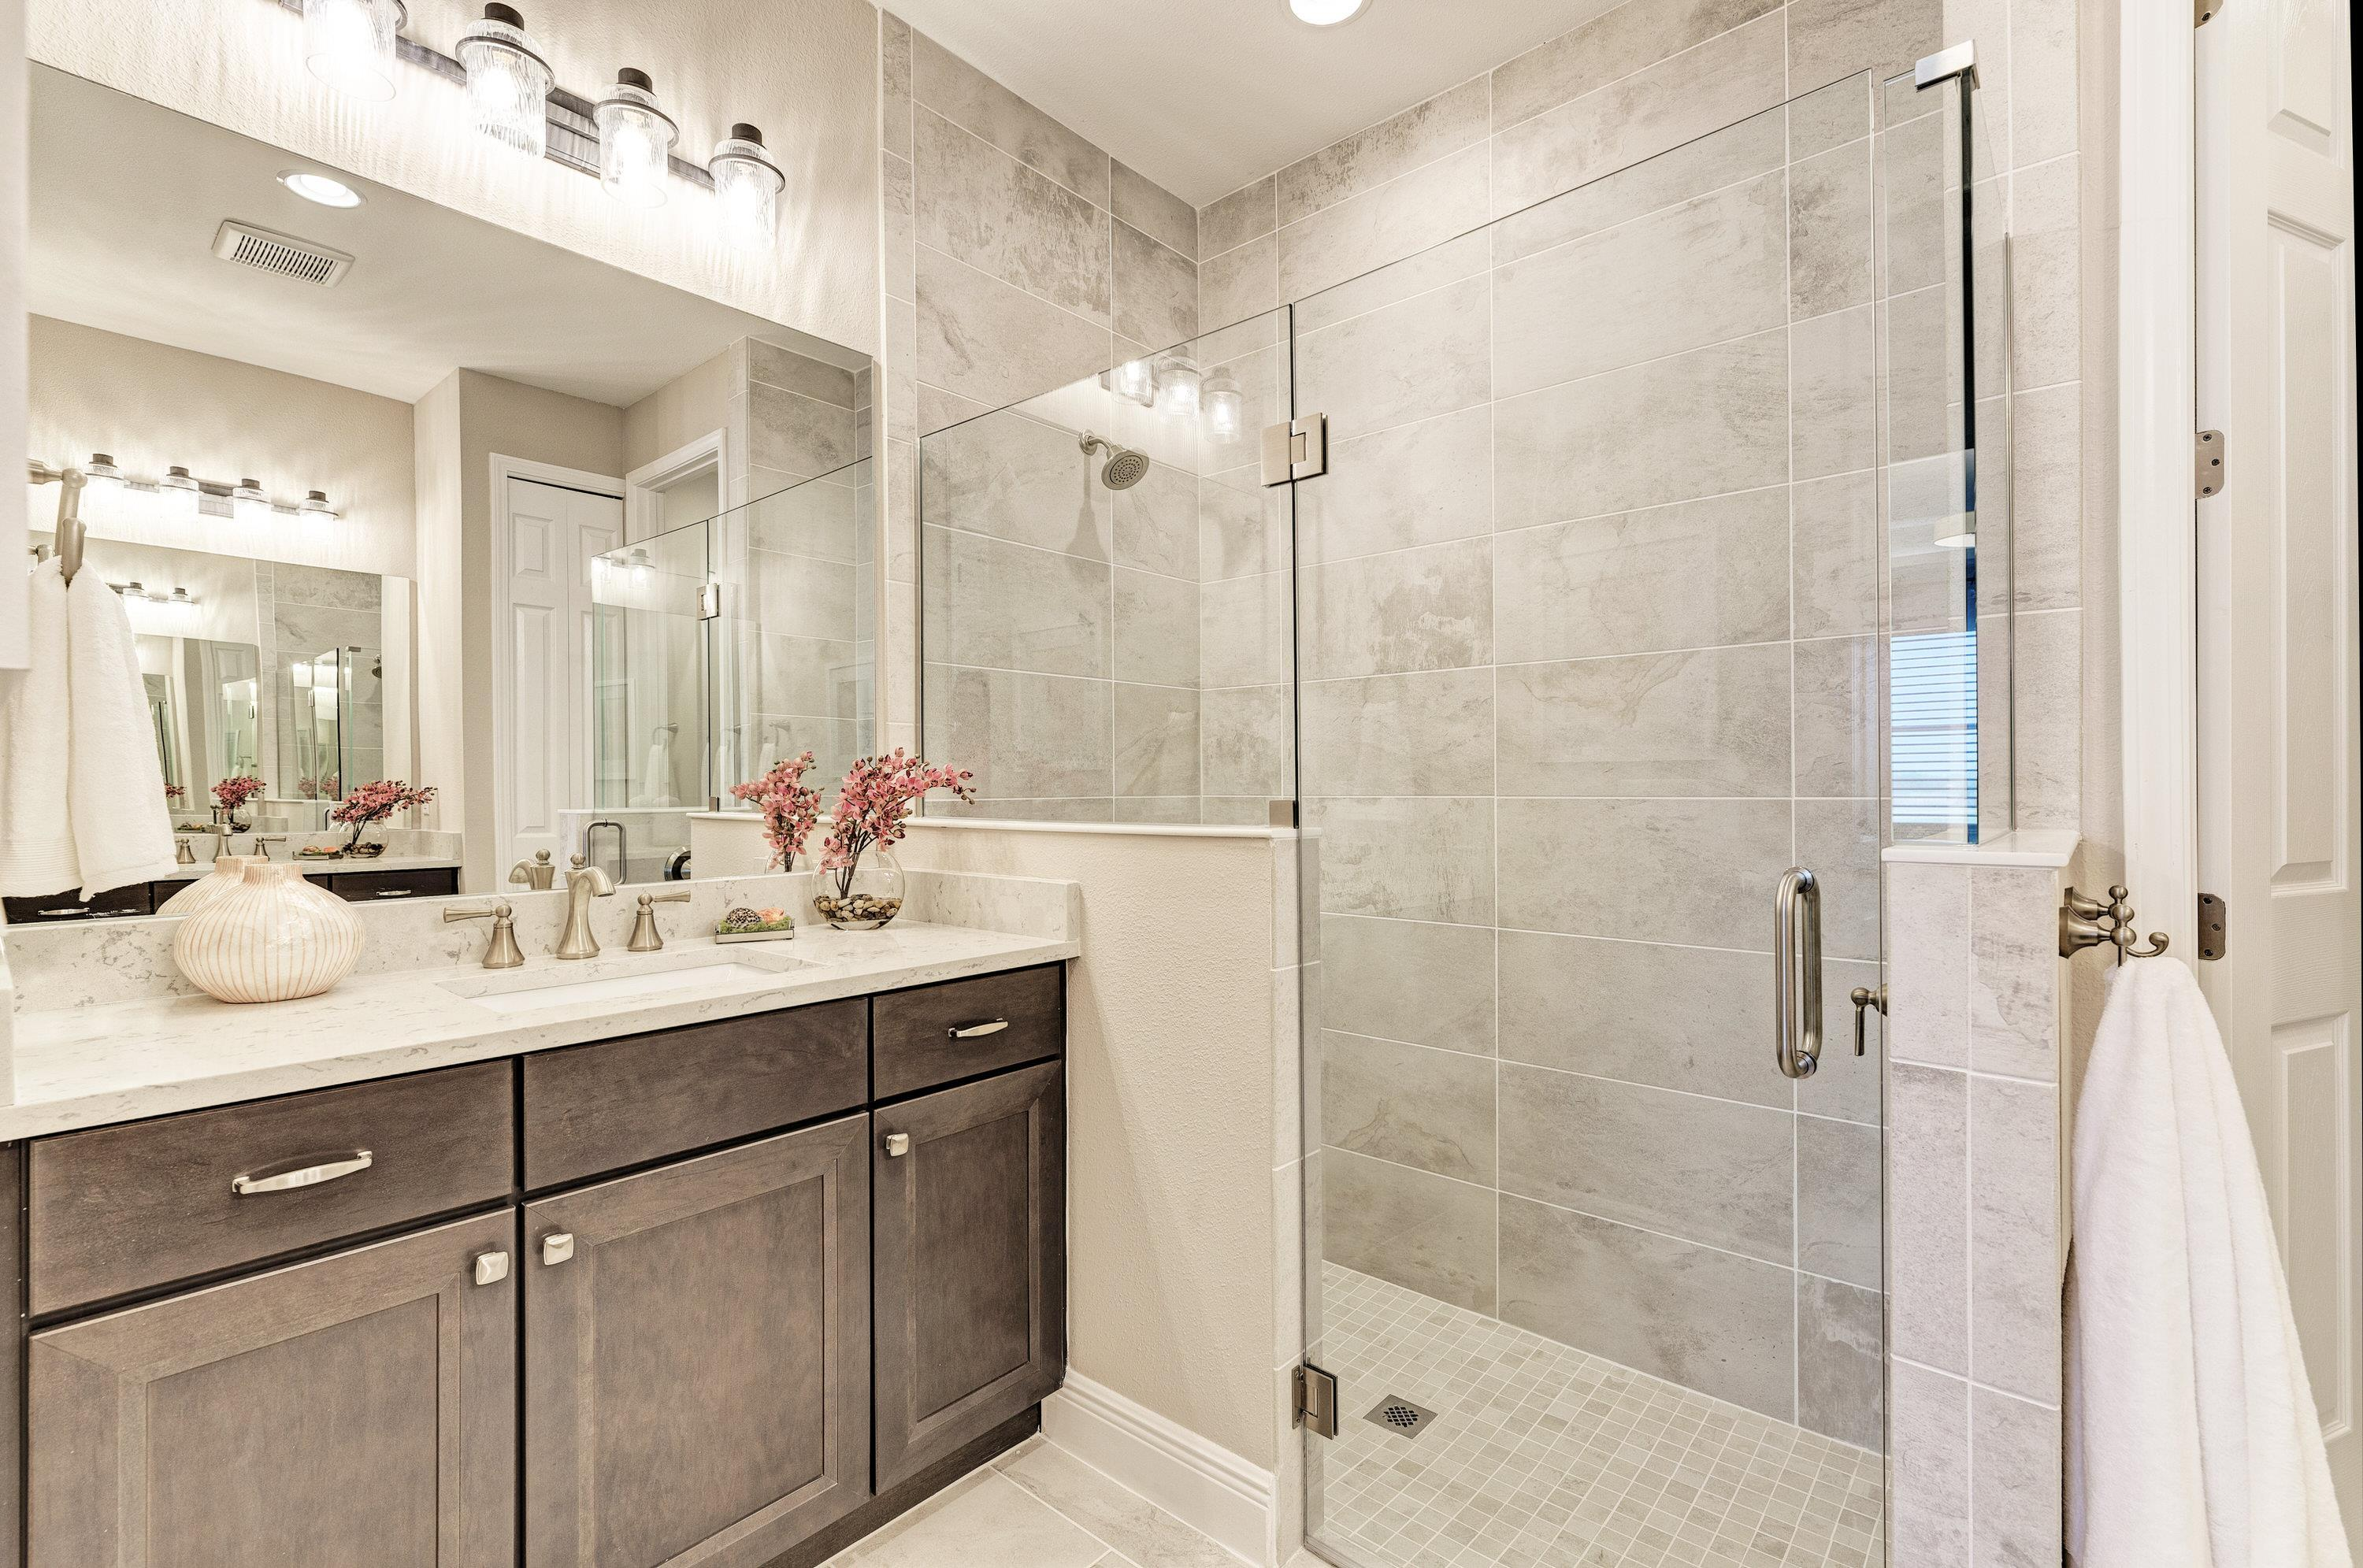 Bathroom featured in the Sanibel Villa Home By Medallion Home in Sarasota-Bradenton, FL